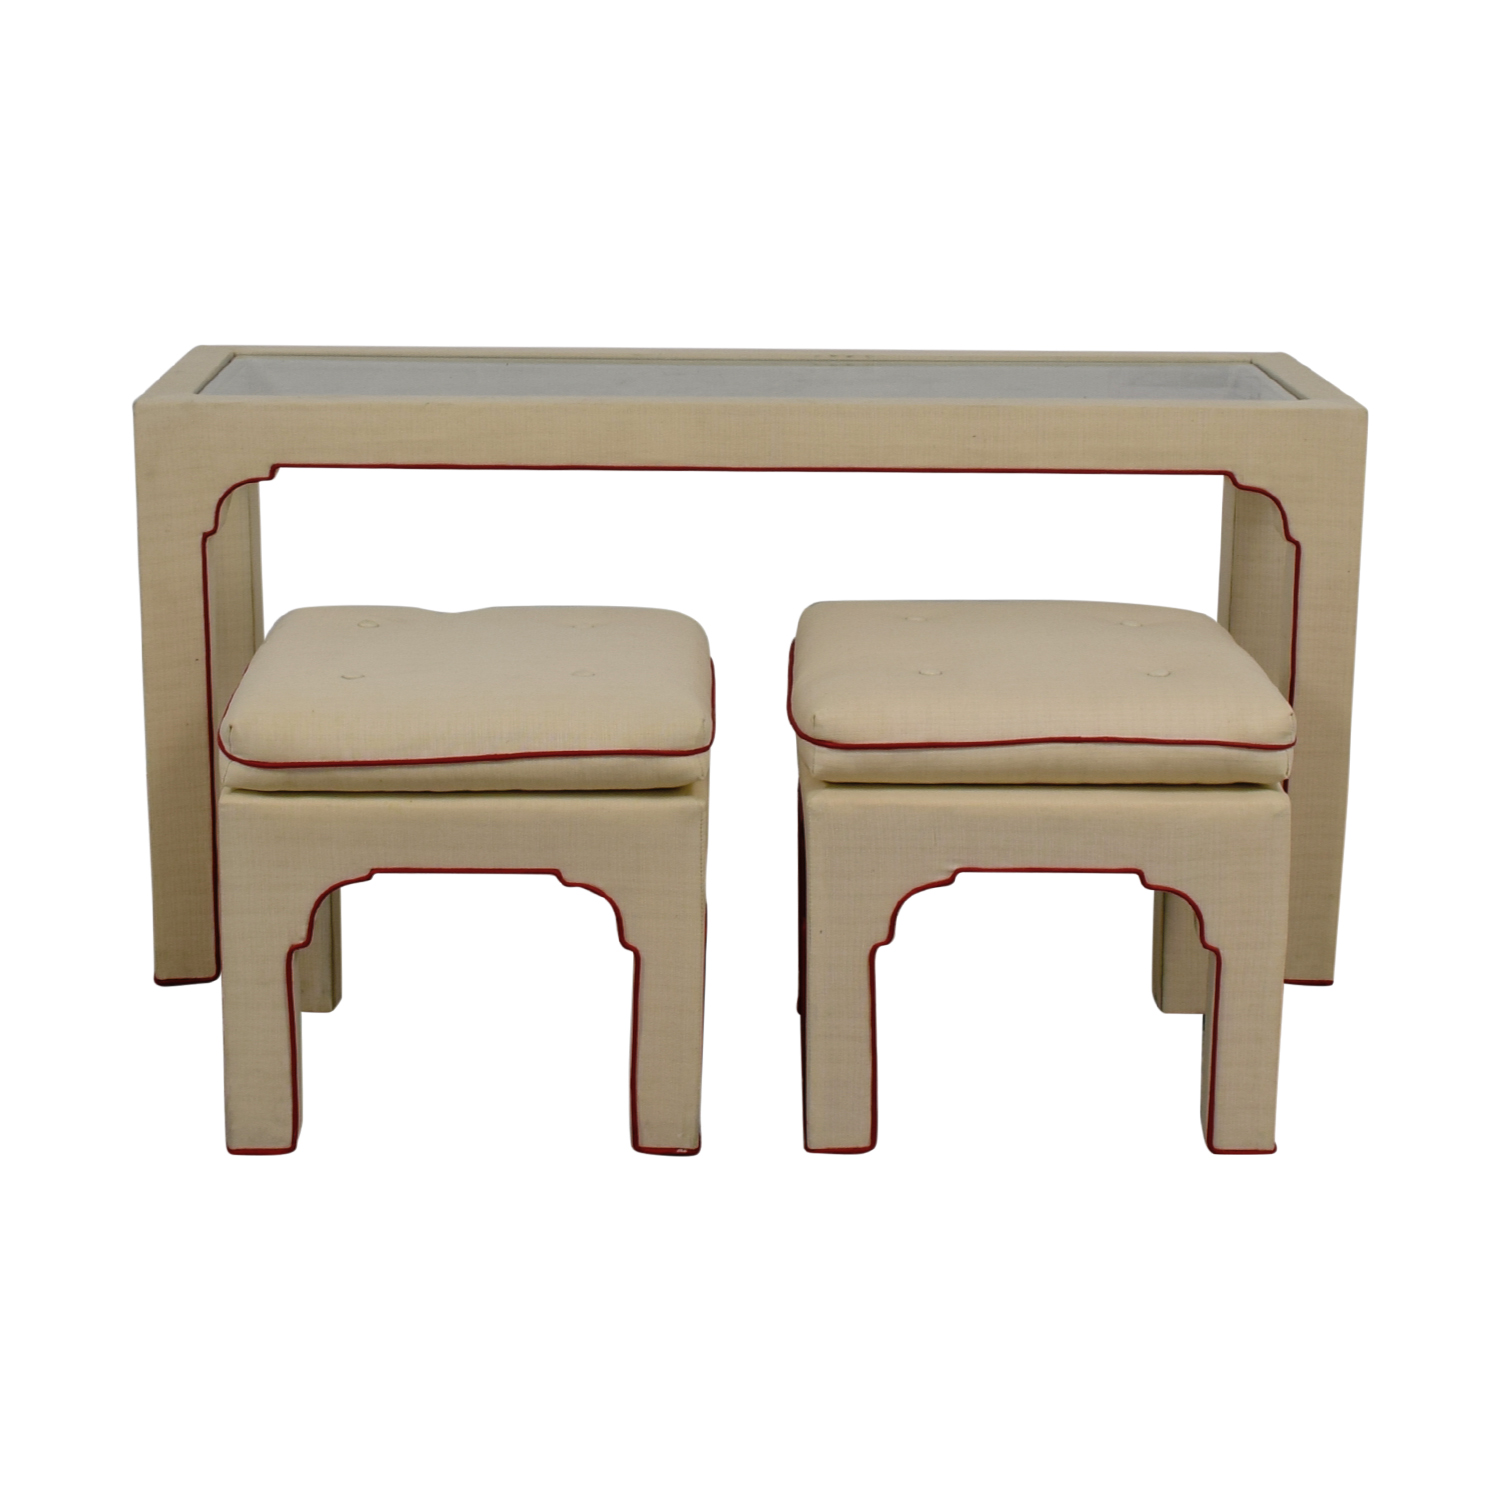 Cream and Red Sofa Table and Stools nj